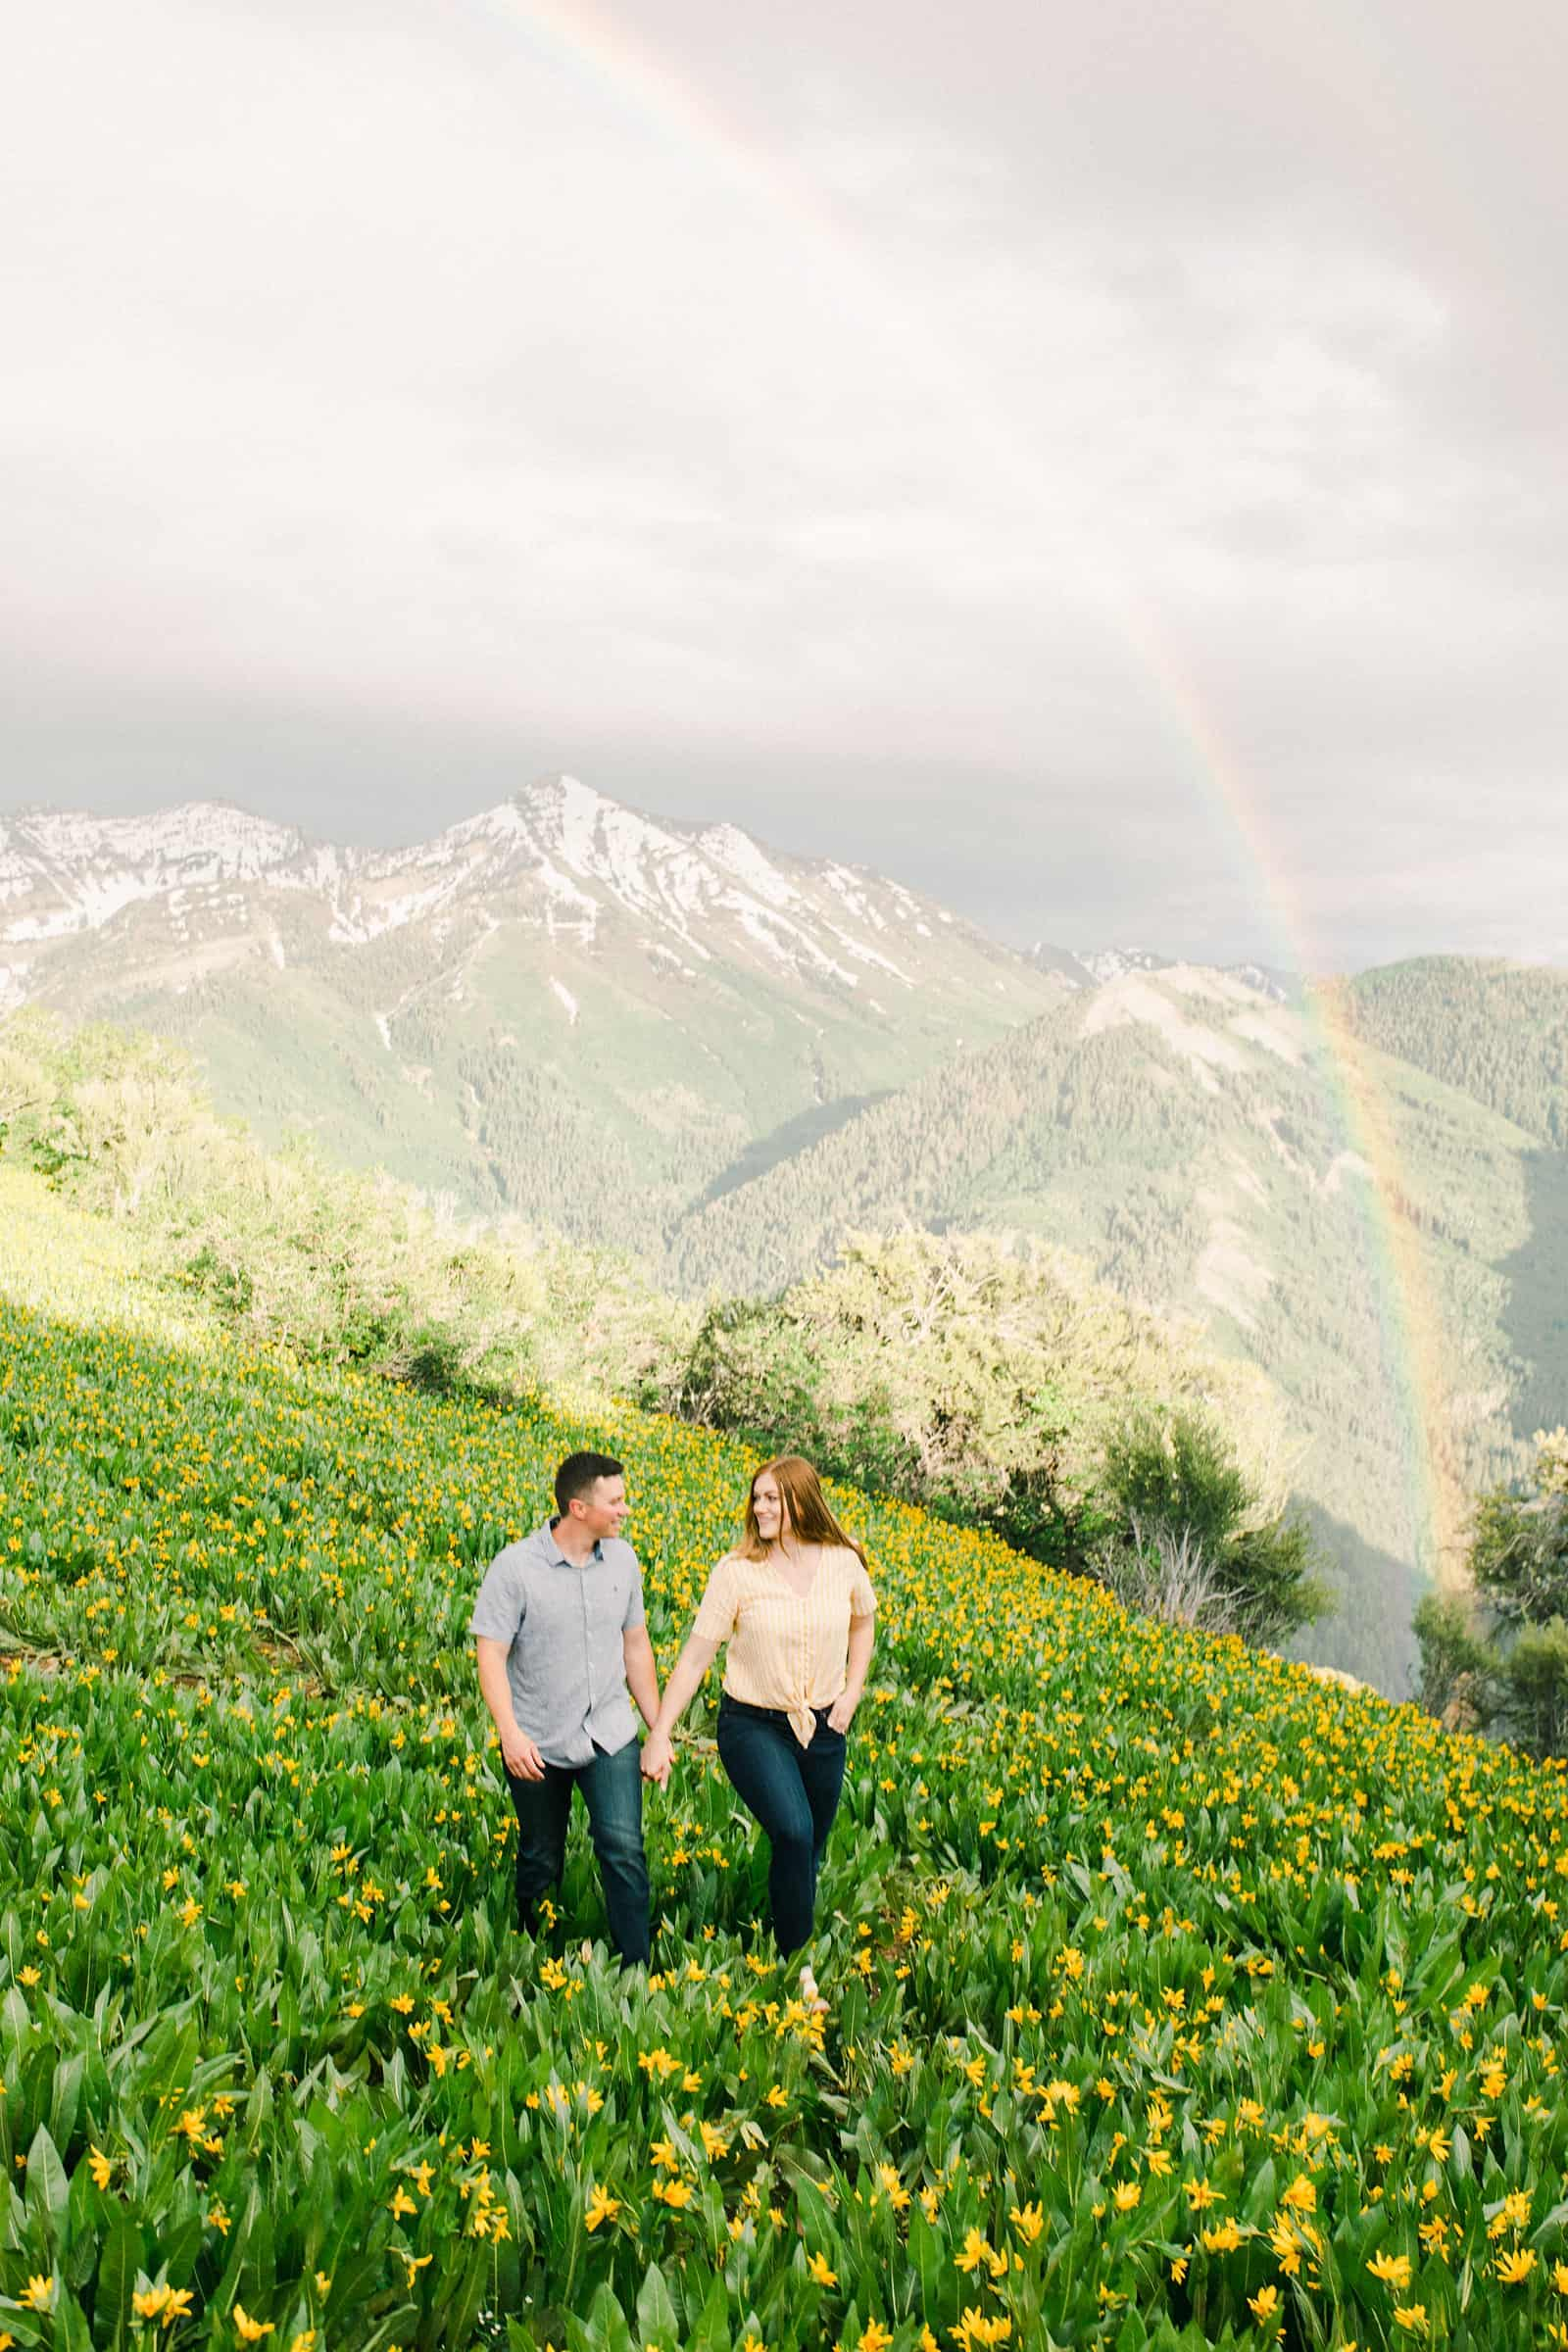 Provo Canyon wildflowers field engagement session, Utah wedding photography, engaged couple walking in yellow flowers and mountains with rainbow in background